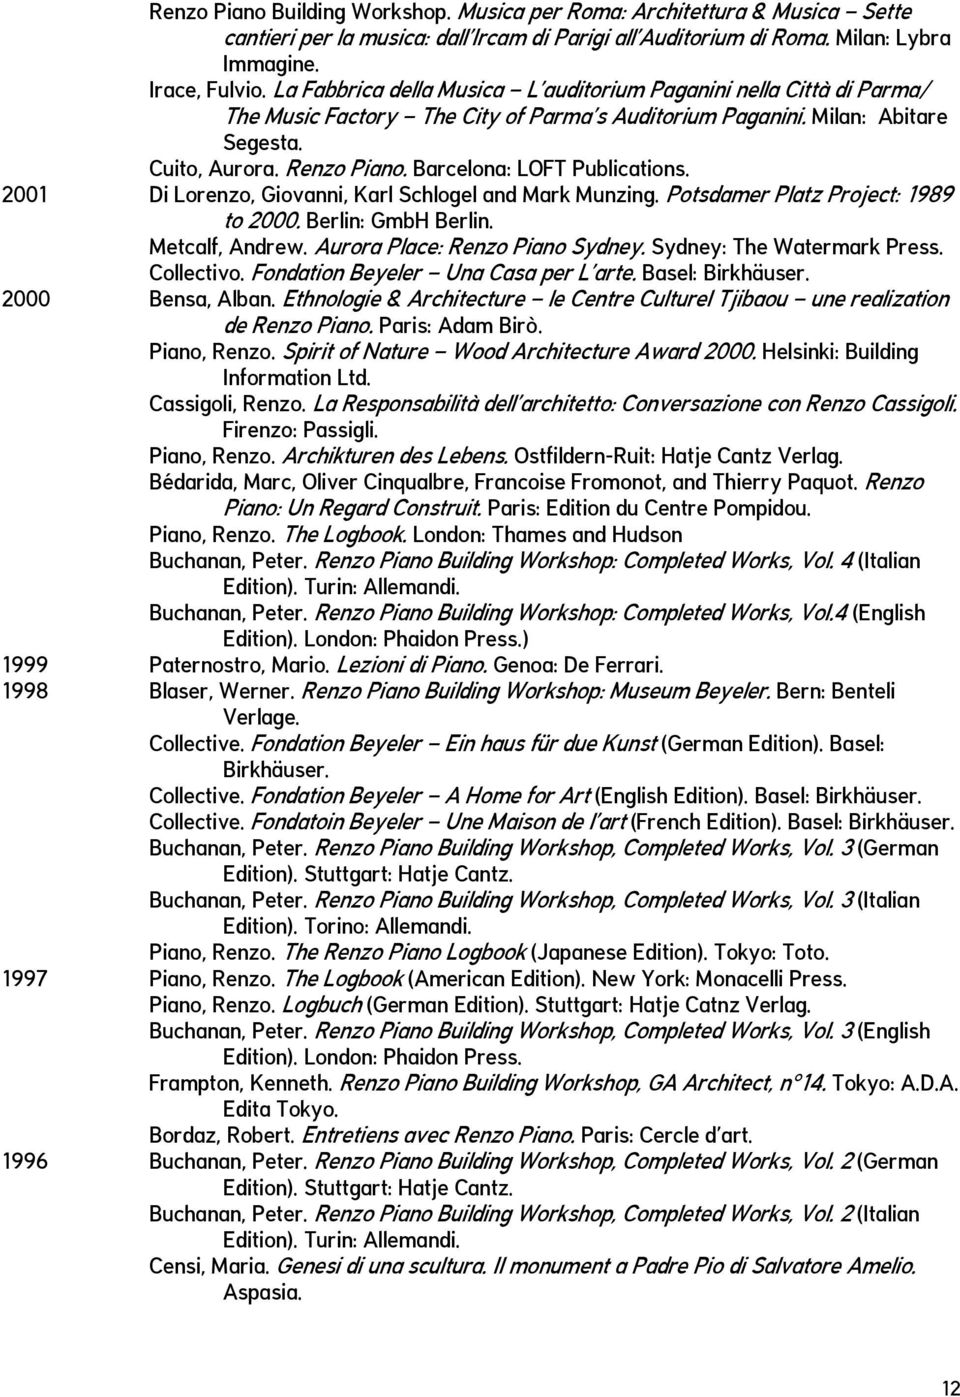 Barcelona: LOFT Publications. 2001 Di Lorenzo, Giovanni, Karl Schlogel and Mark Munzing. Potsdamer Platz Project: 1989 to 2000. Berlin: GmbH Berlin. Metcalf, Andrew. Aurora Place: Renzo Piano Sydney.